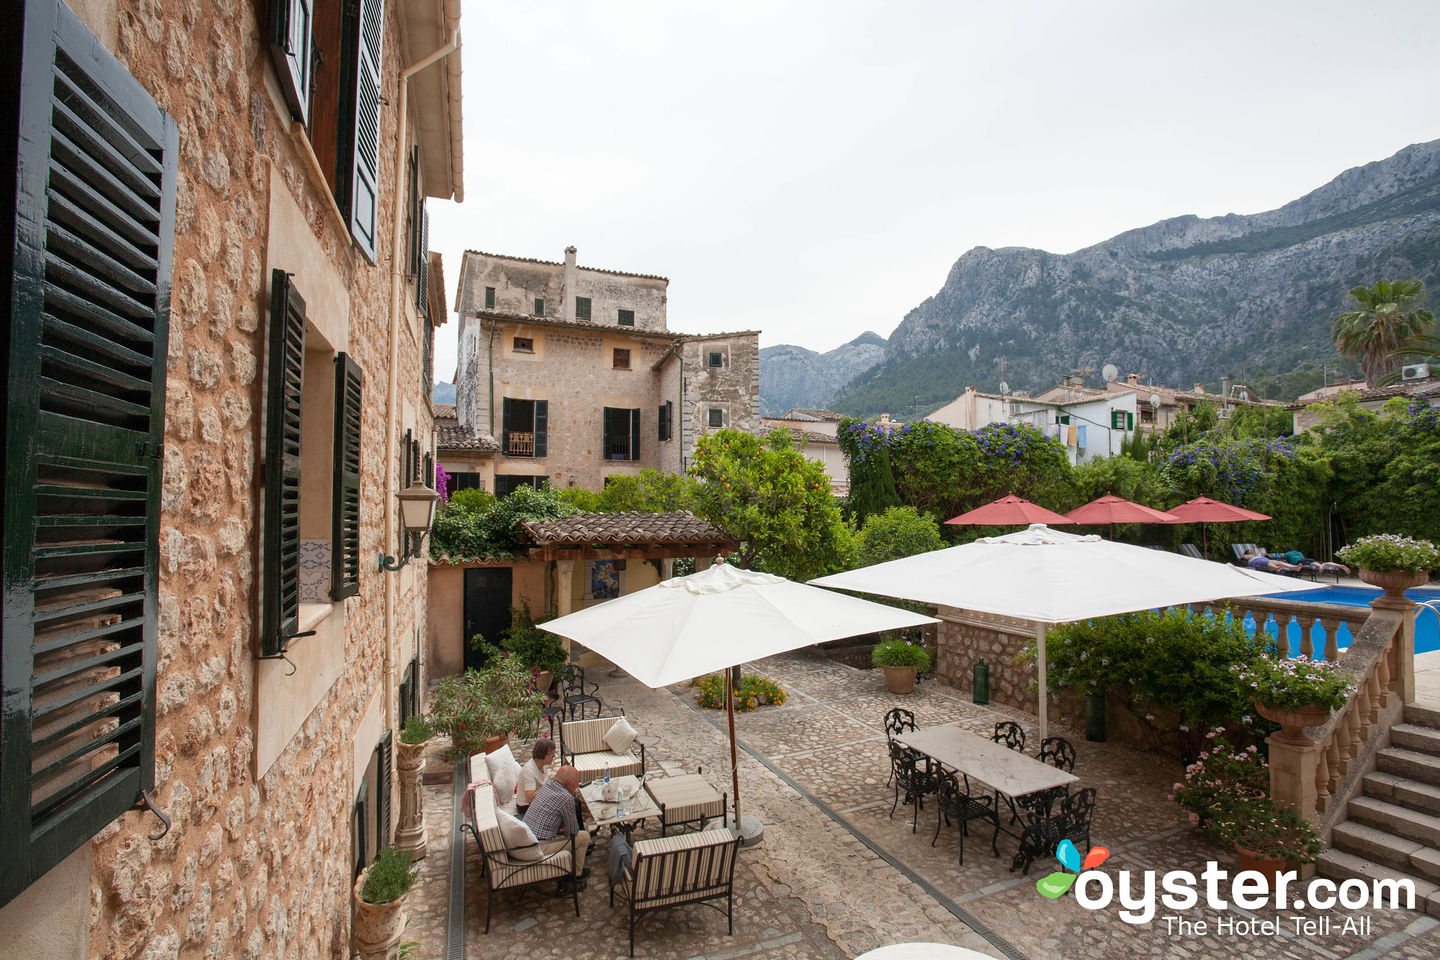 The Best Boutique Hotels In Majorca Updated 2019 Oyster Com